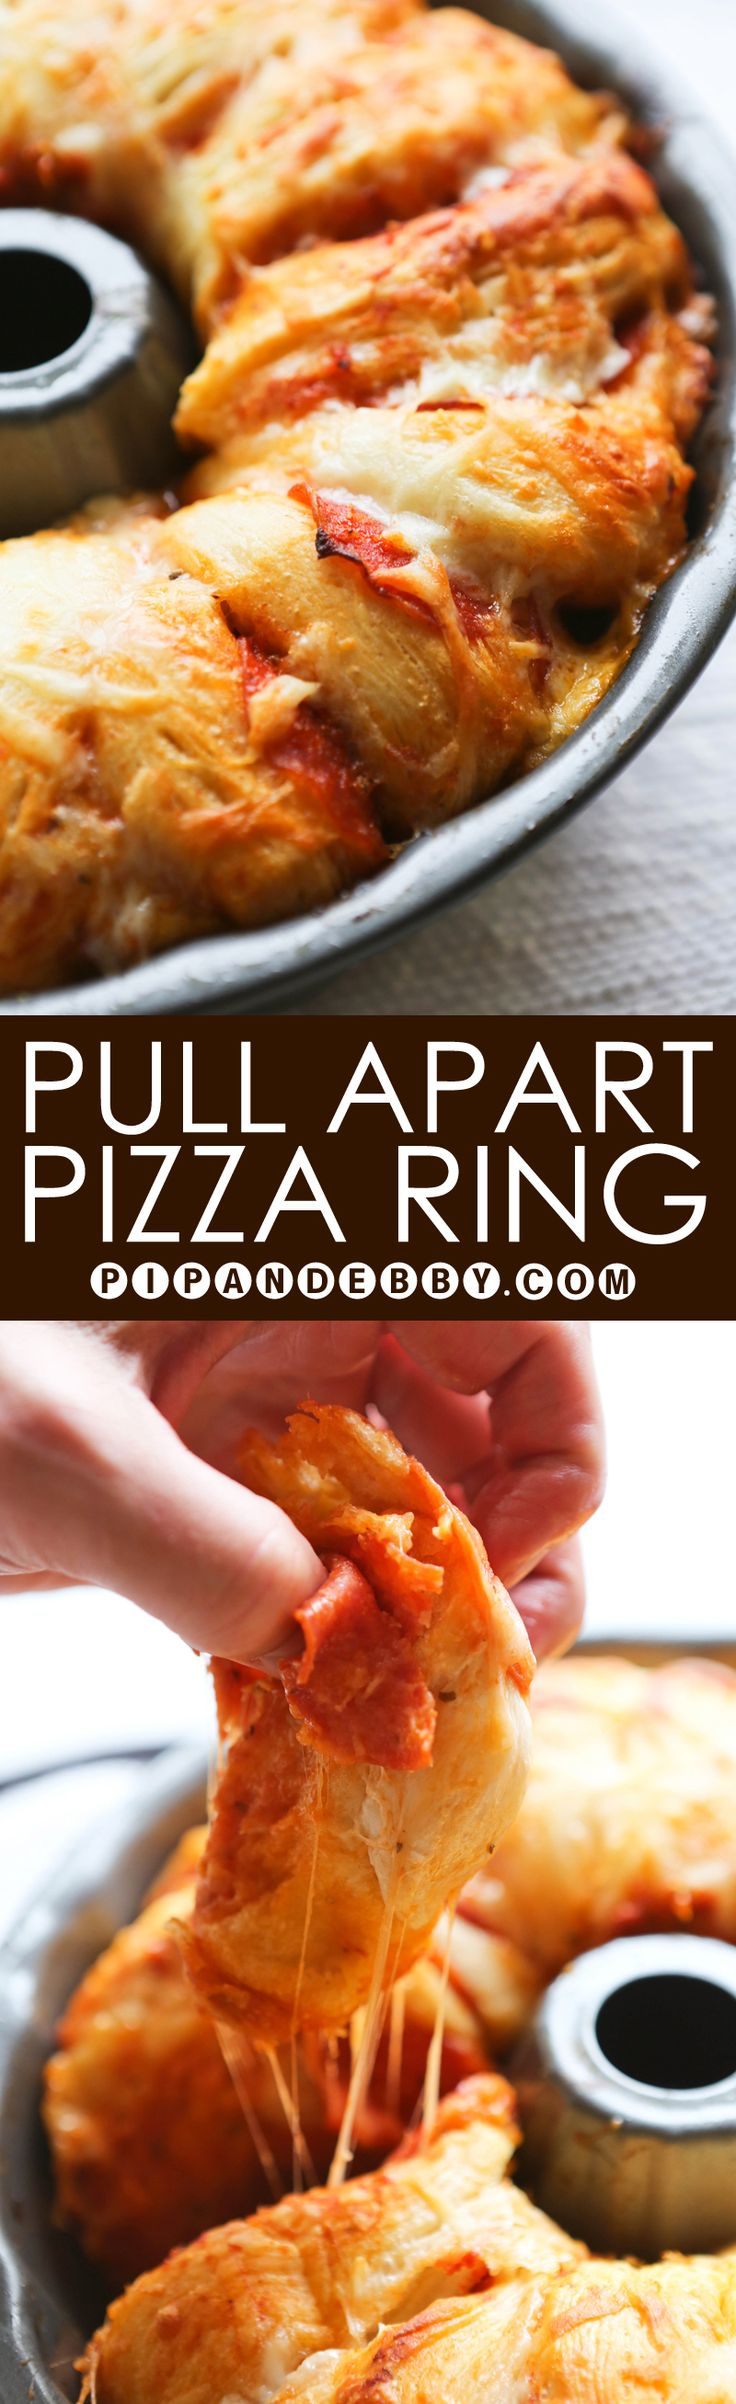 Pull Apart Pizza Ring   A fun twist on pizza! Kids love it and it couldn't be easier to prepare.